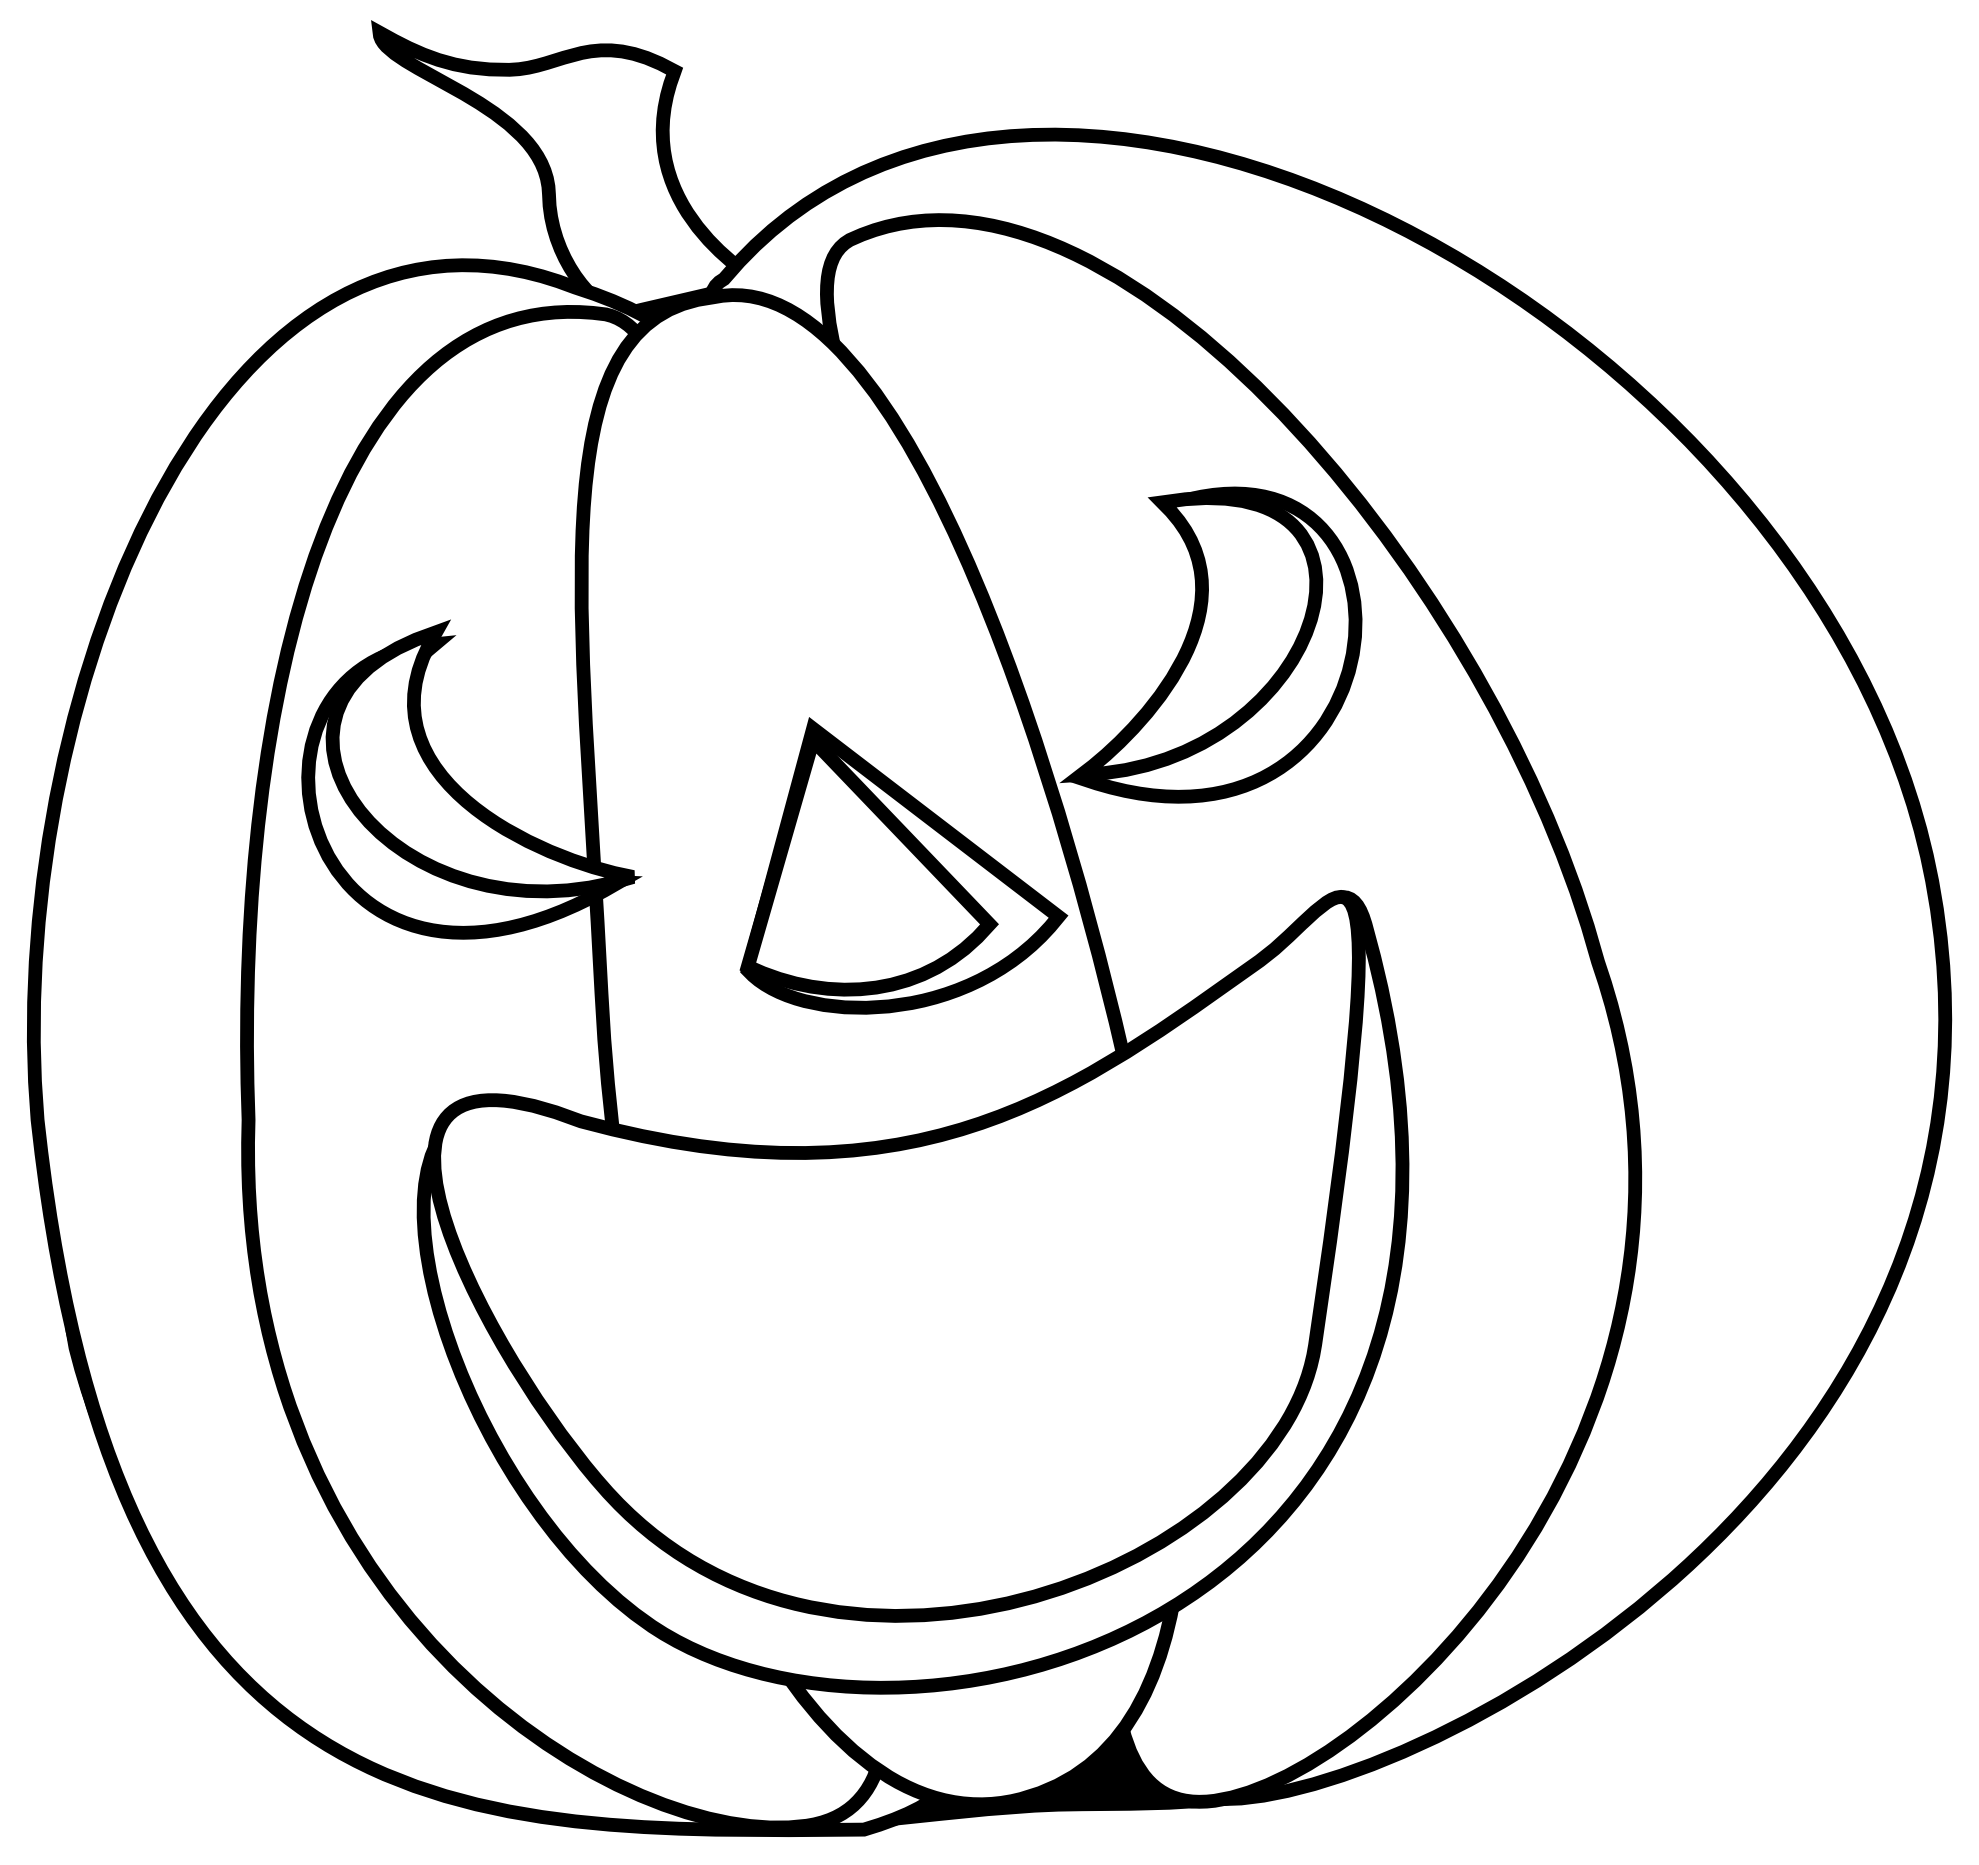 black-and-white-halloween-pumpkin-clipart-aiqbLX9iM pngHalloween Clip Art Black And White Pumpkin